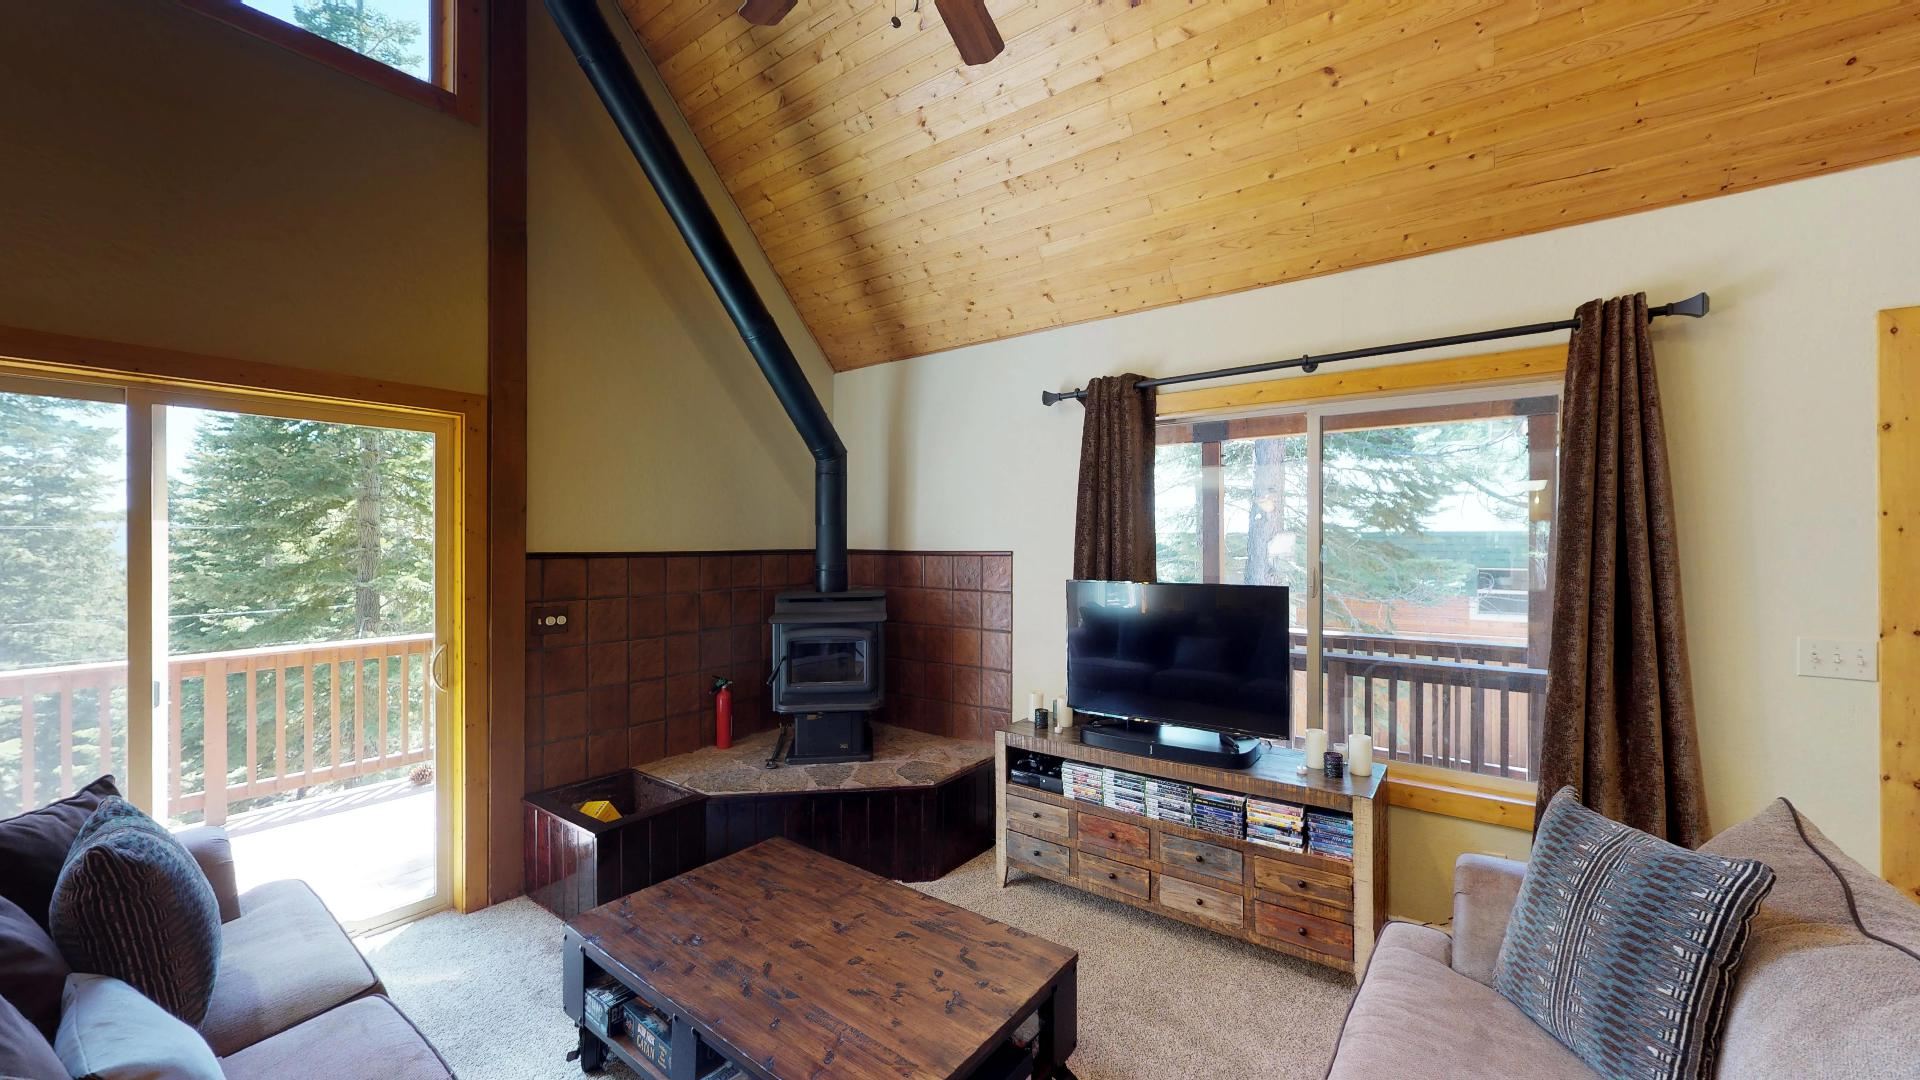 Living Area Features a Fireplace and Flat Screen TV